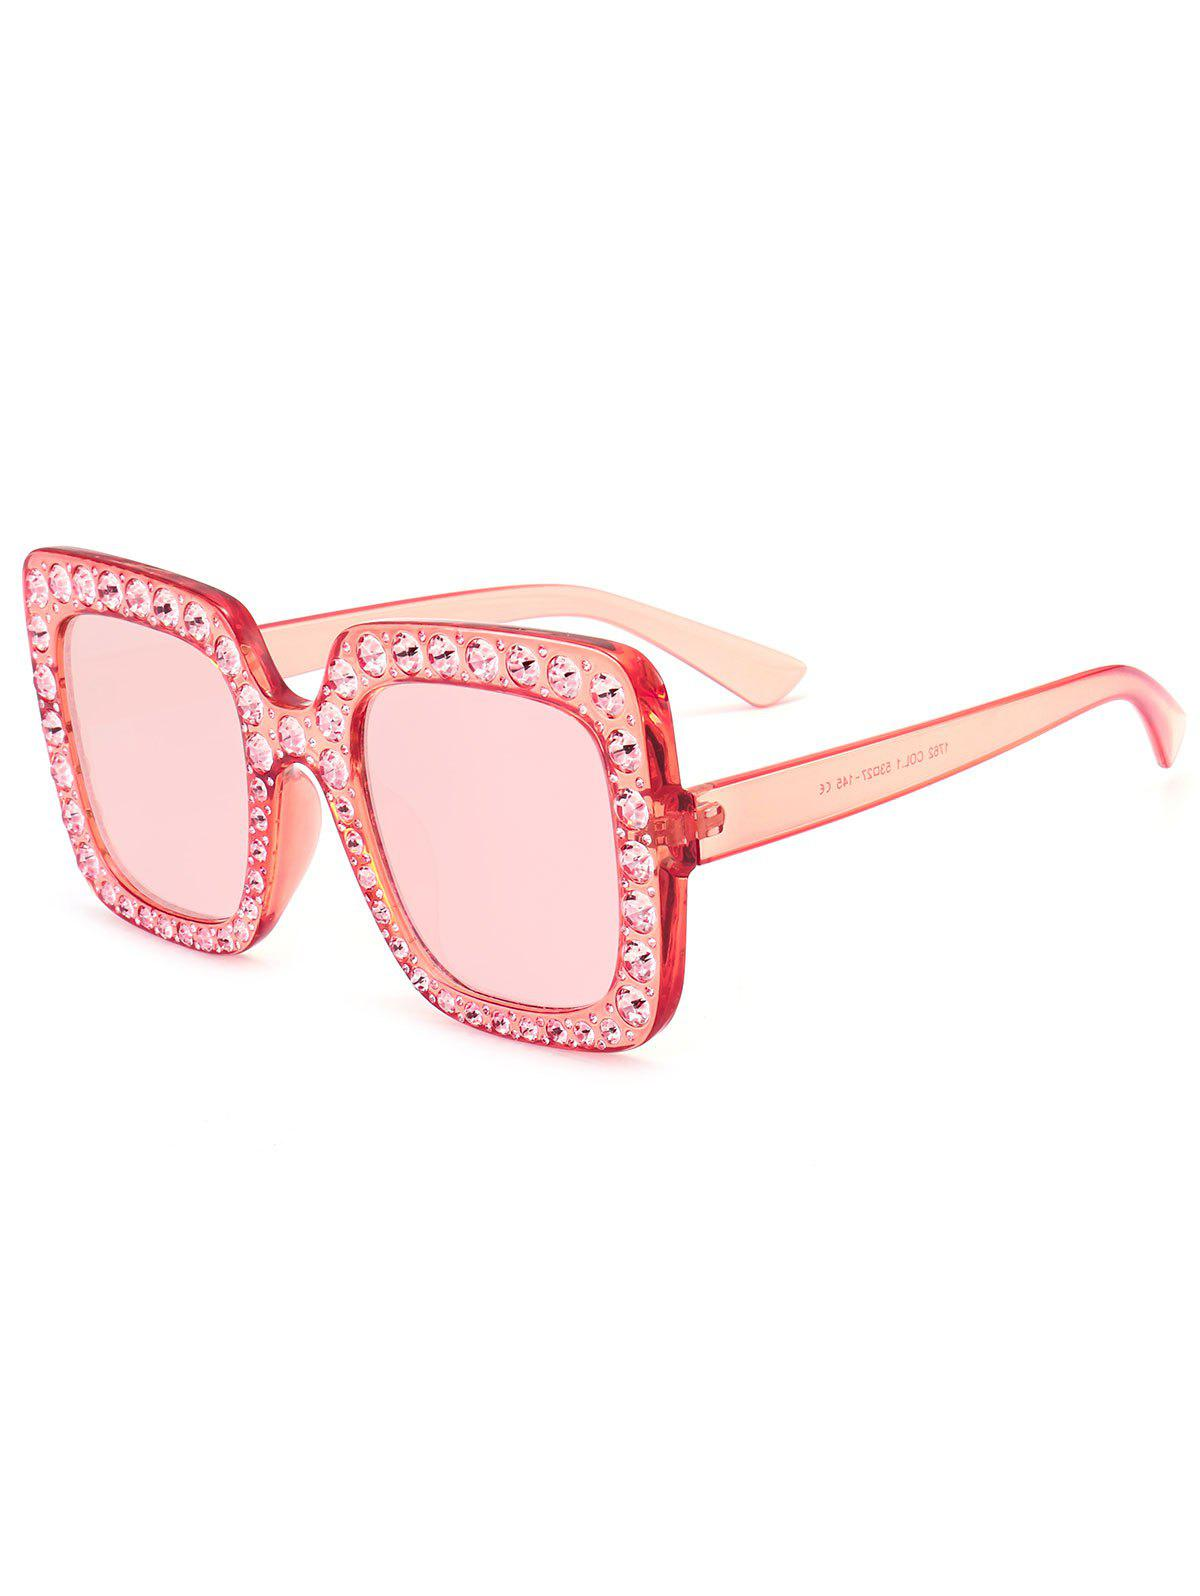 Affordable Vintage Rhinestone Embellished Oversized Square Sunglasses